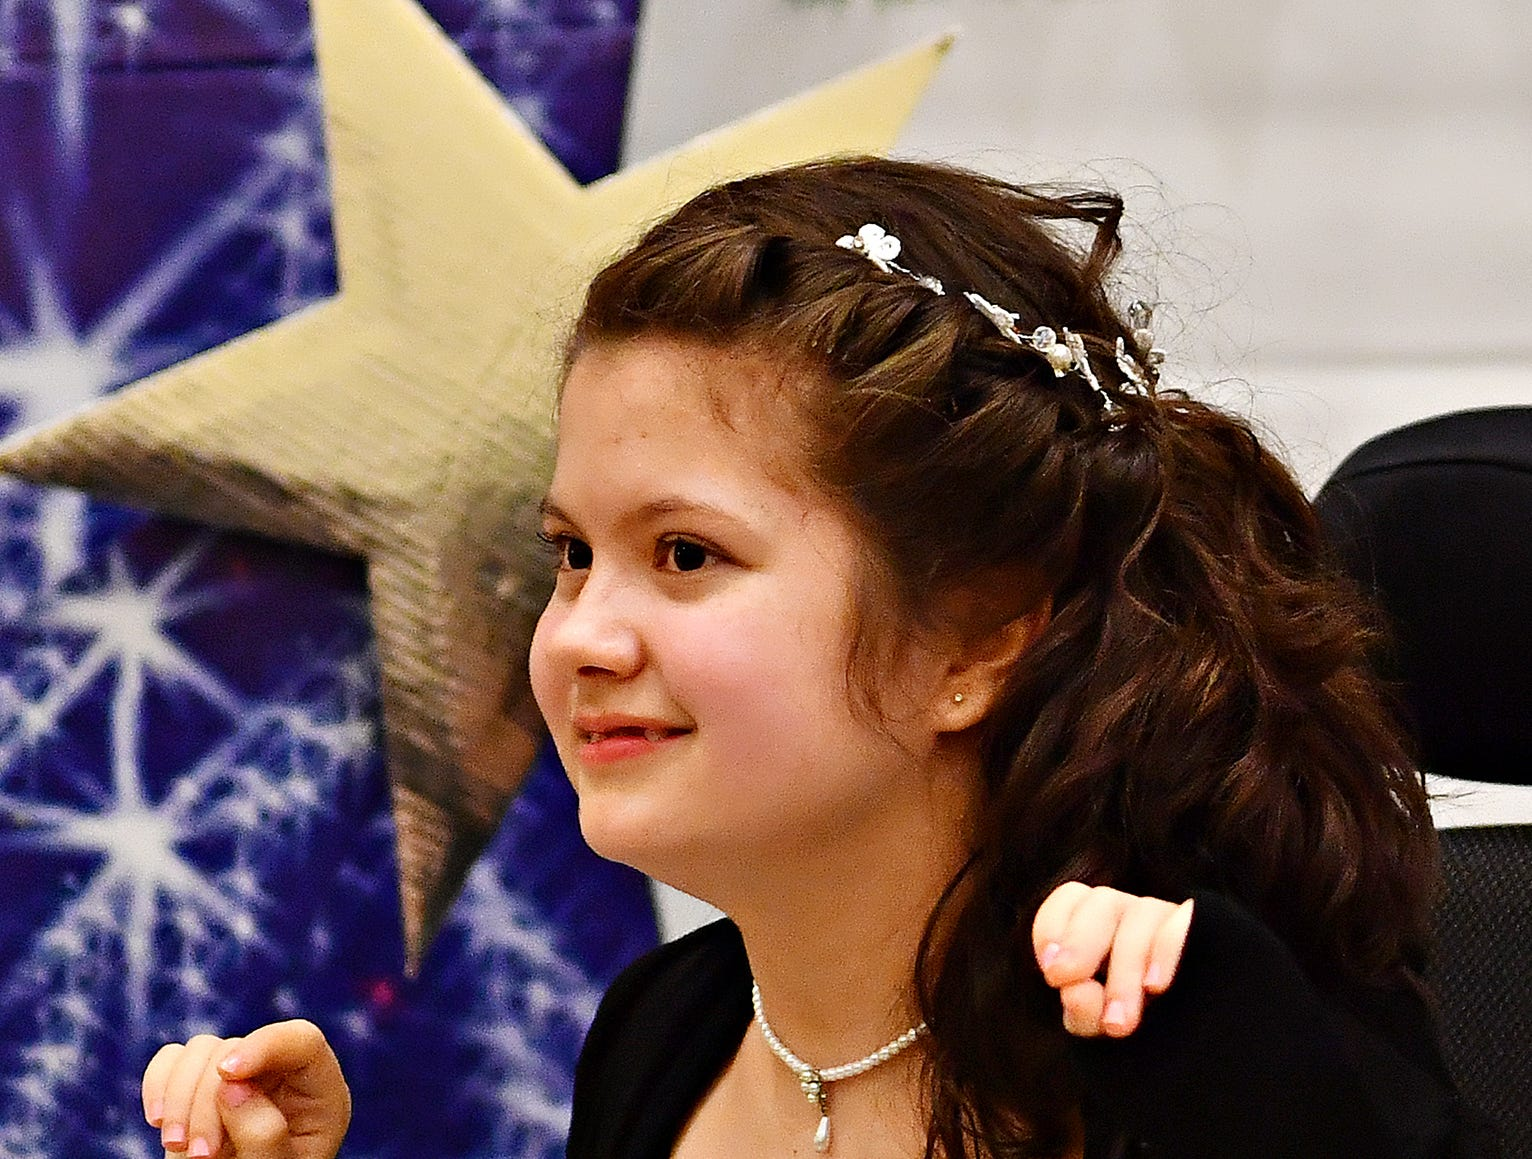 A Night to Shine, a Tim Tebow Foundation sponsored prom for people with special needs, at Friendship Community Church in Dover Friday, Feb. 8, 2019. Dawn J. Sagert photo